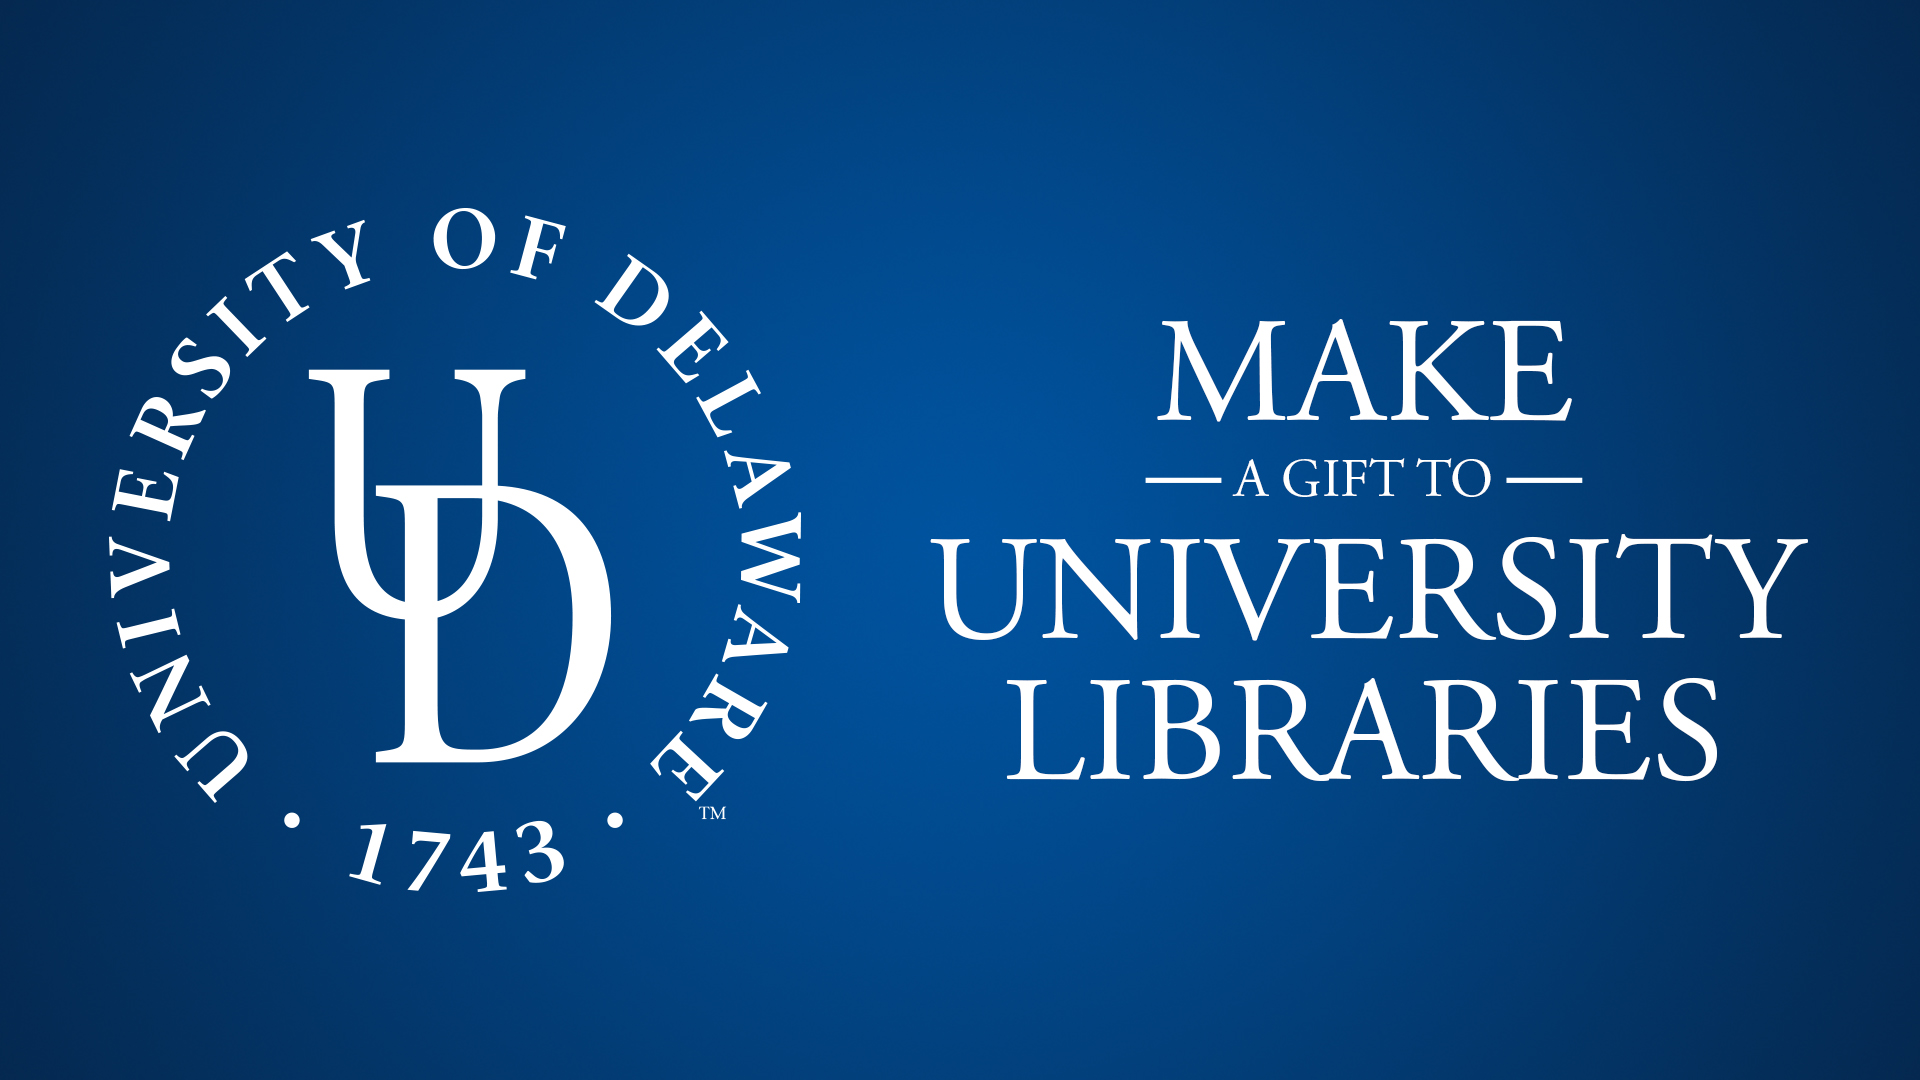 Make Your Gift to University Libraries